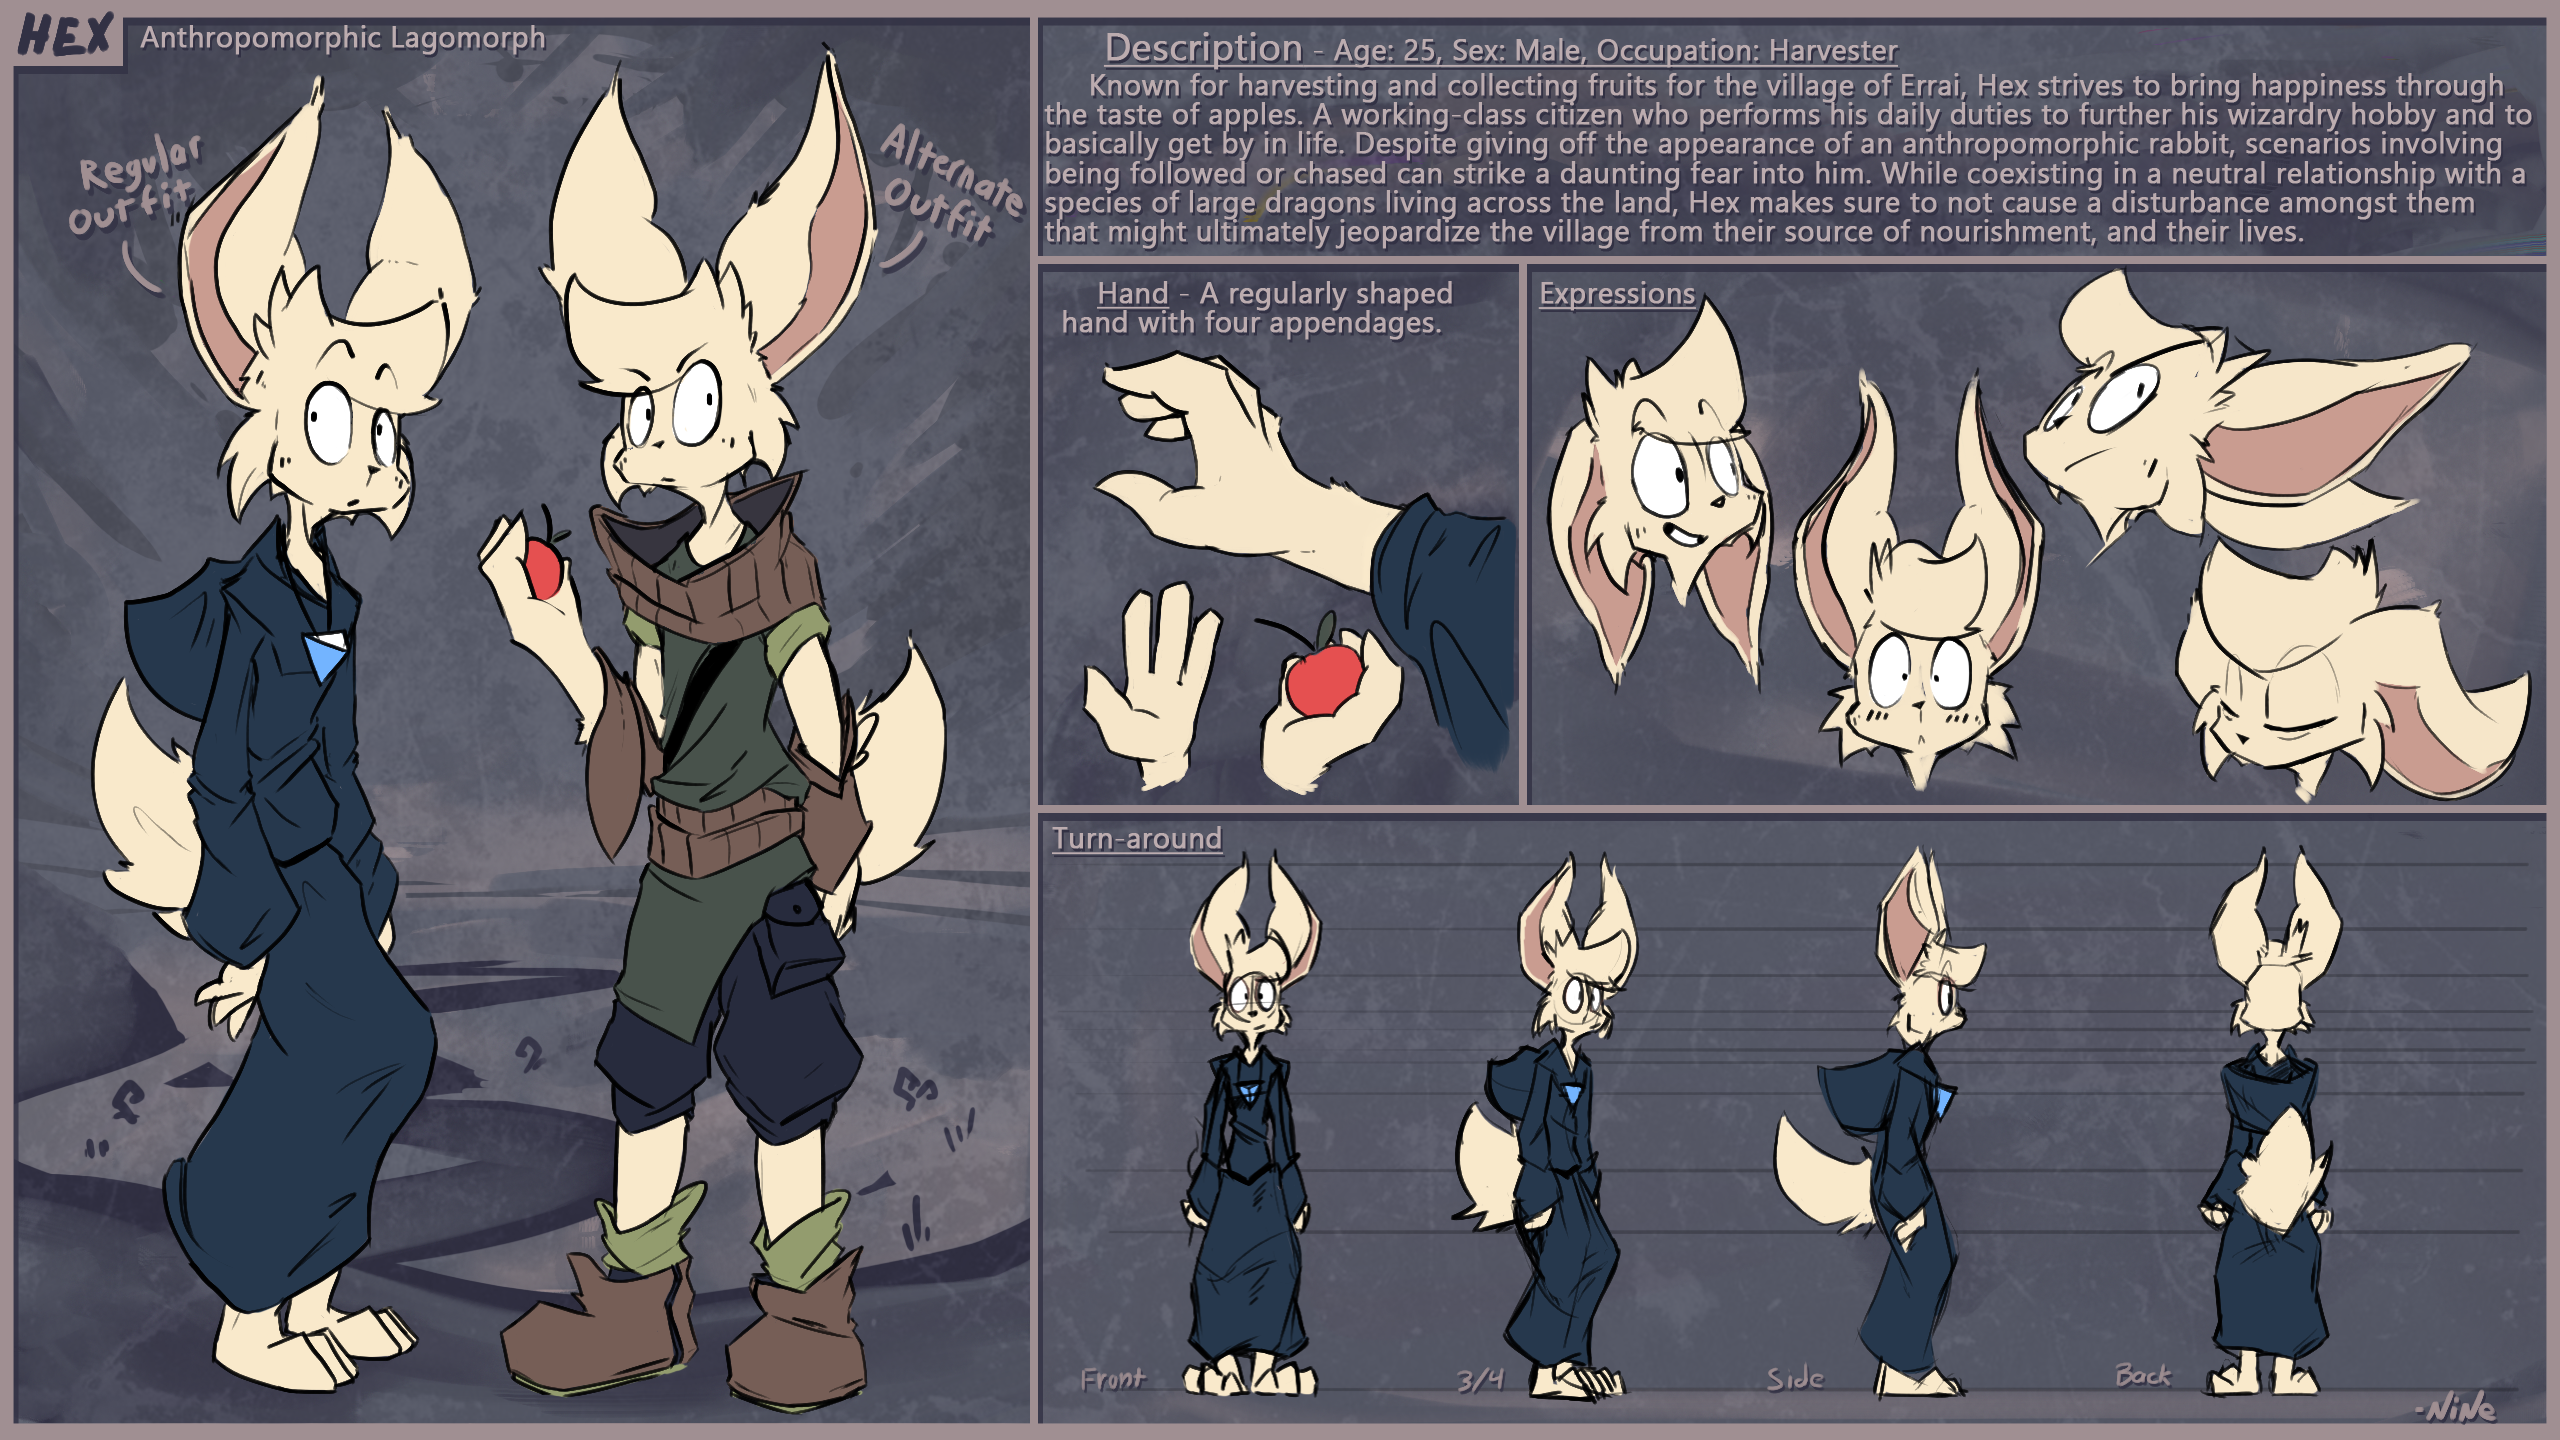 The Harvester of Errai (Hex's Reference Sheet)